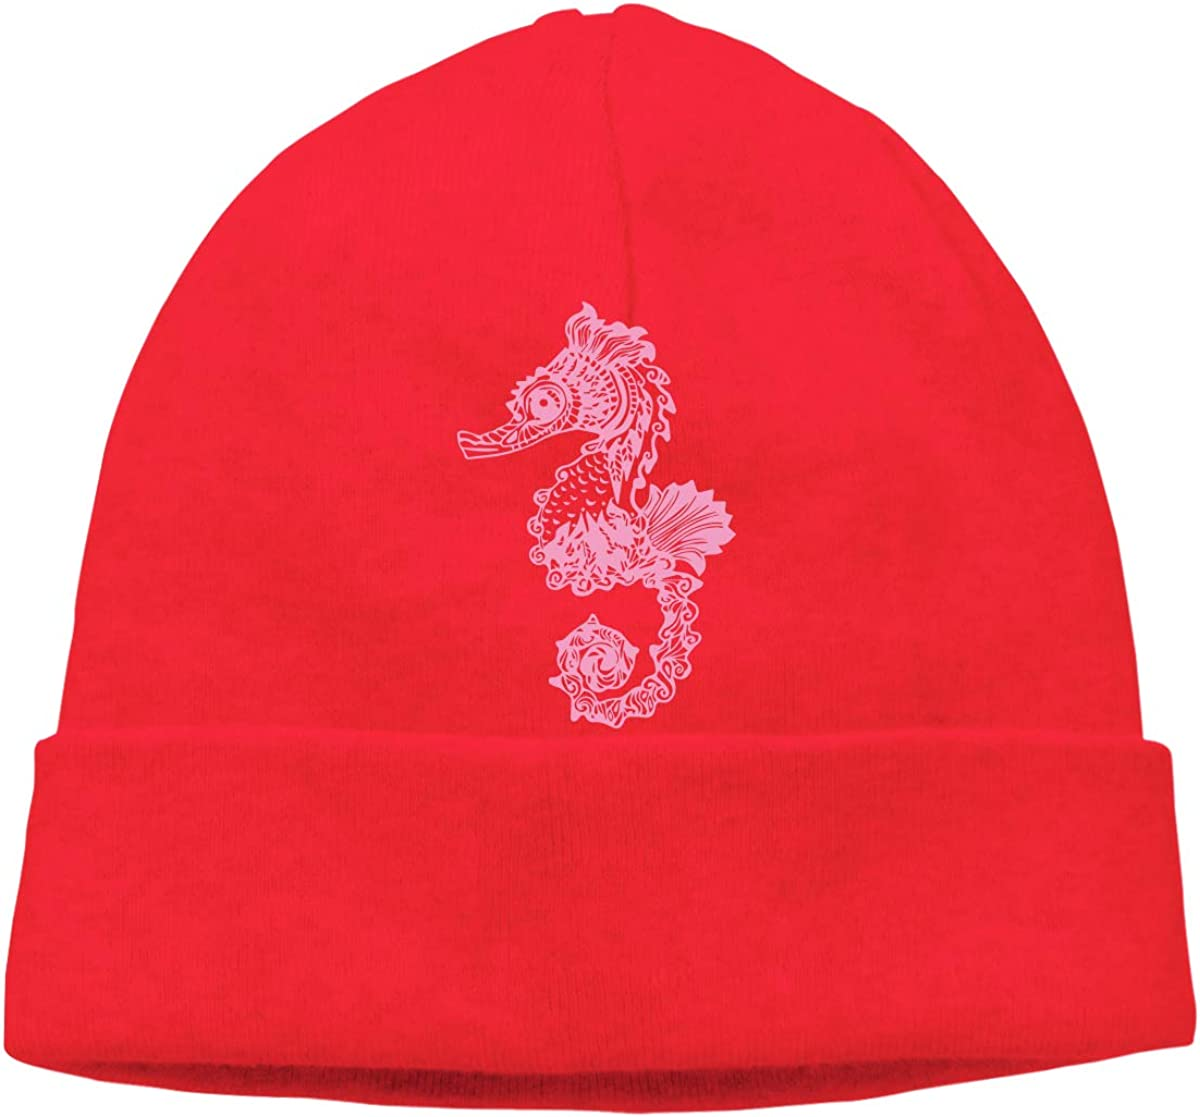 Wool Skull Cap BF5Y3z/&MA Mens and Womens Seahorse Knitting Hat